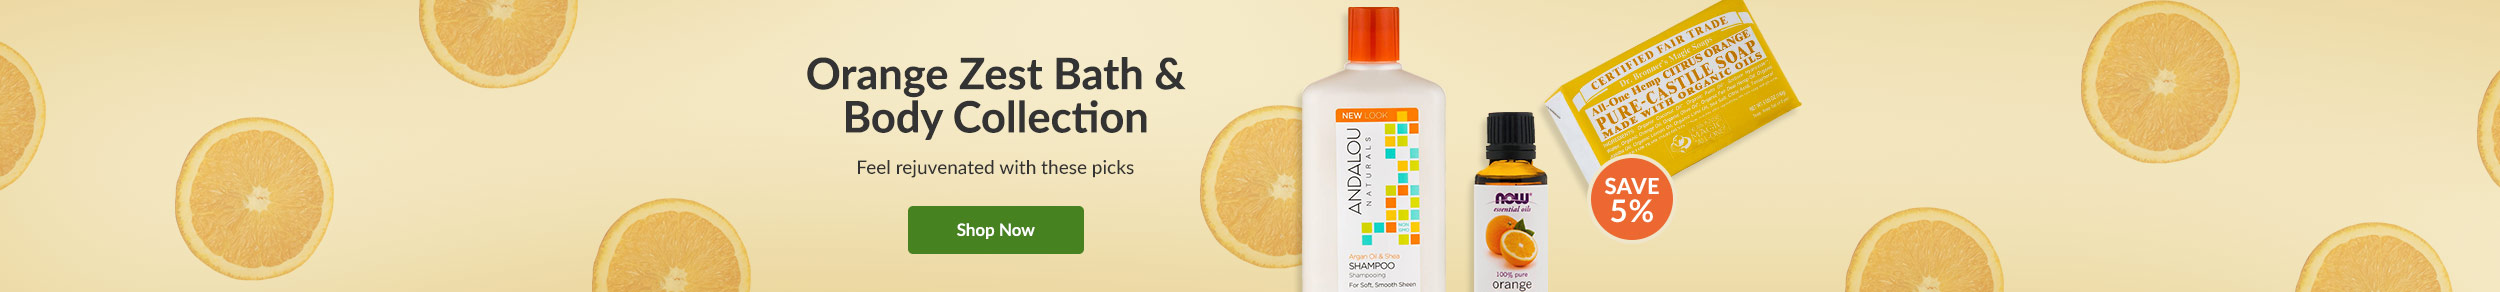 https://i3.pureformulas.net/images/static/BUNDLES-Orange-Zest-Bath-Body_slide3_061918.jpg